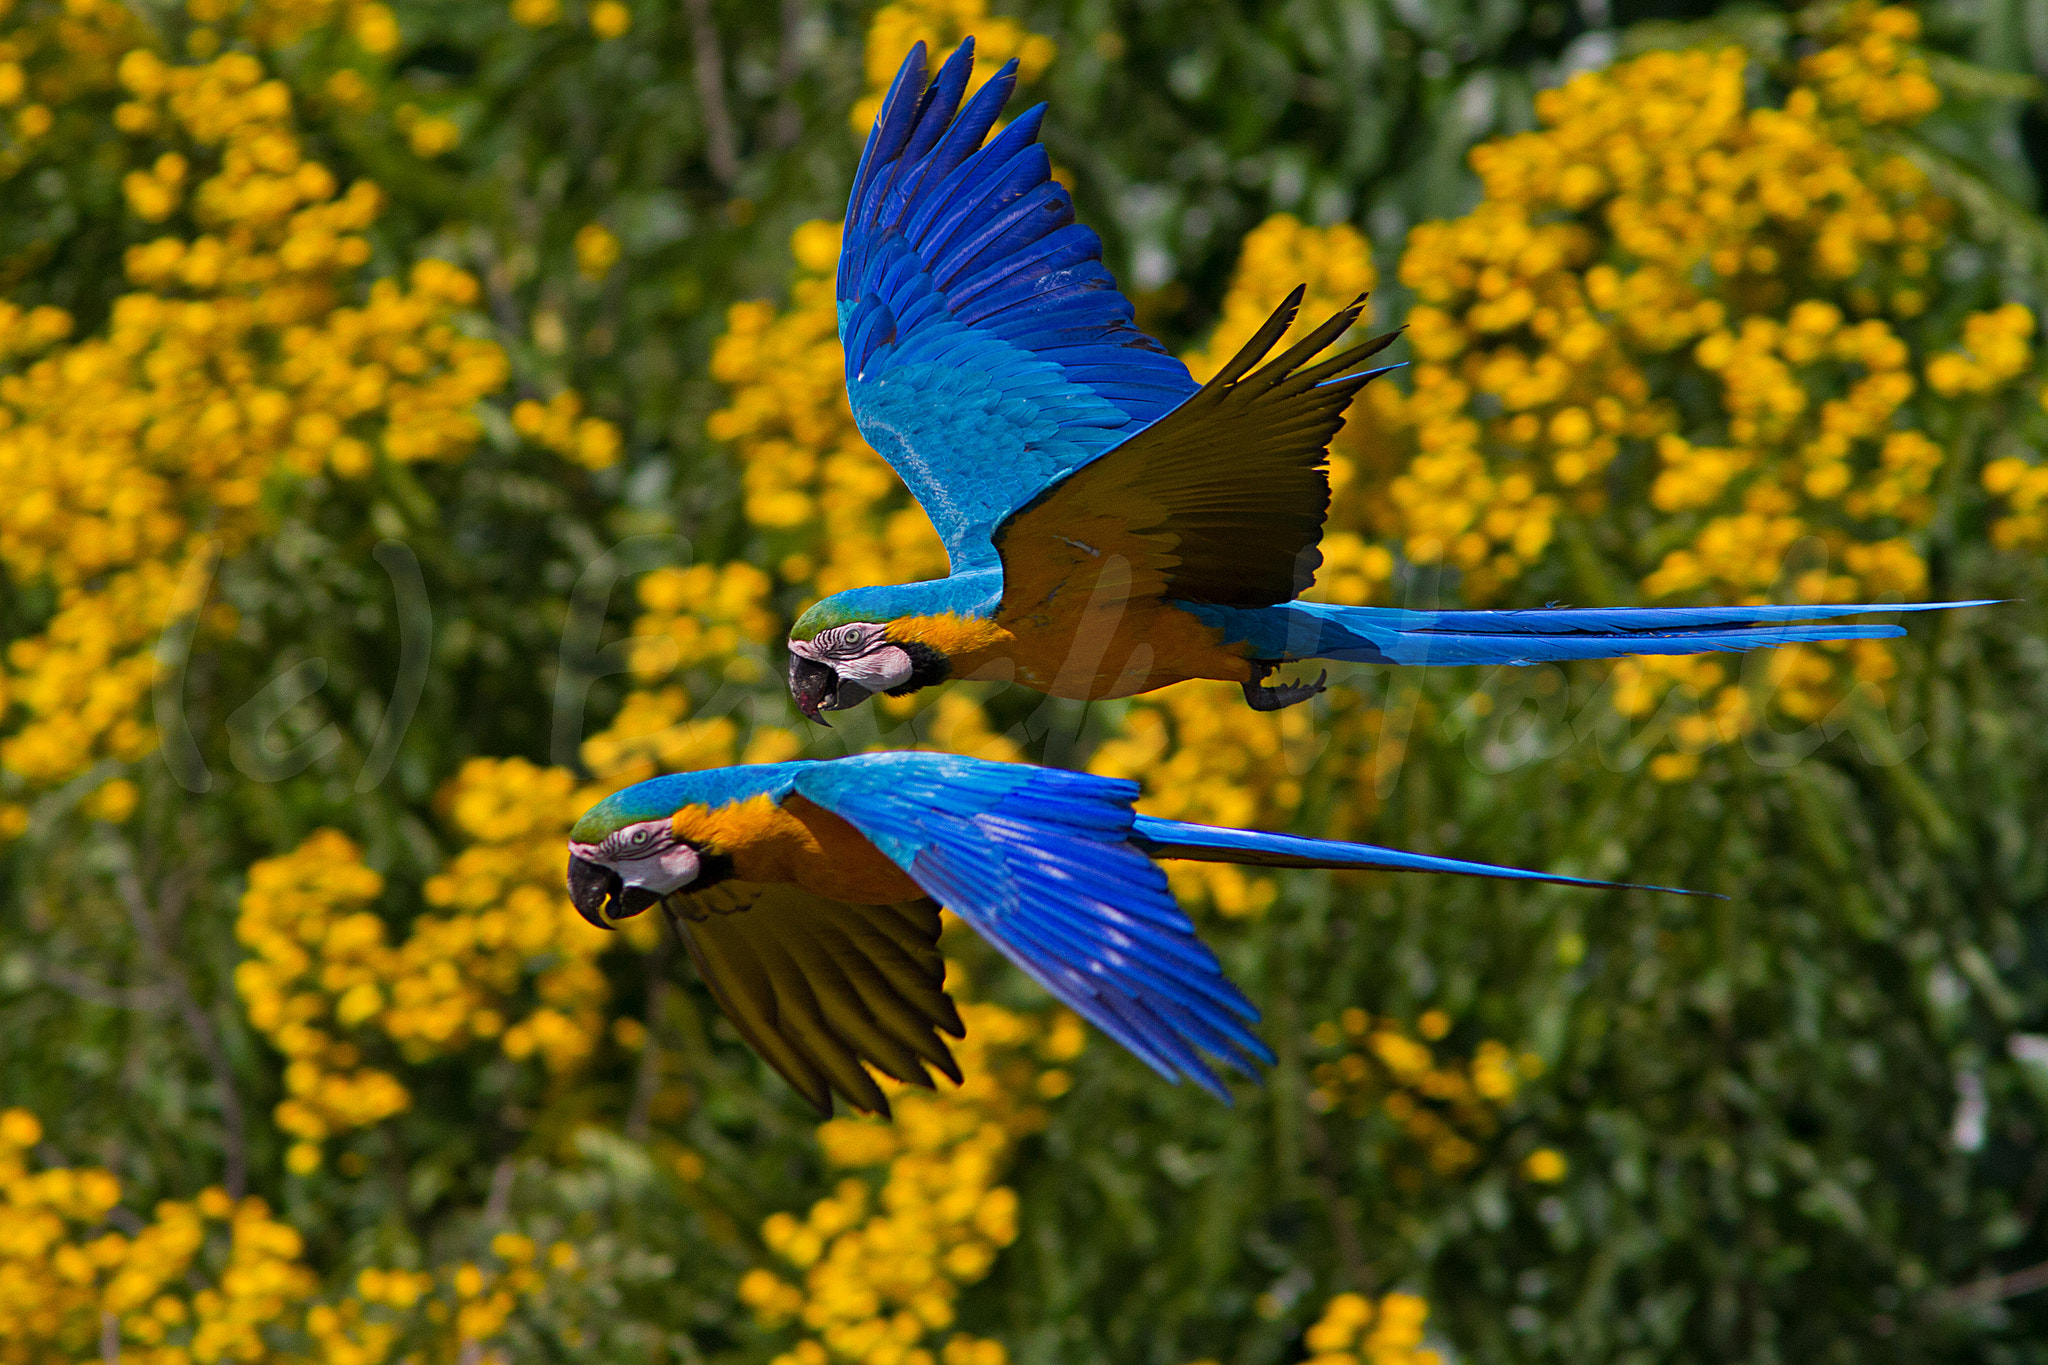 Photograph Blue and yellow macaws by Erick Houli on 500px